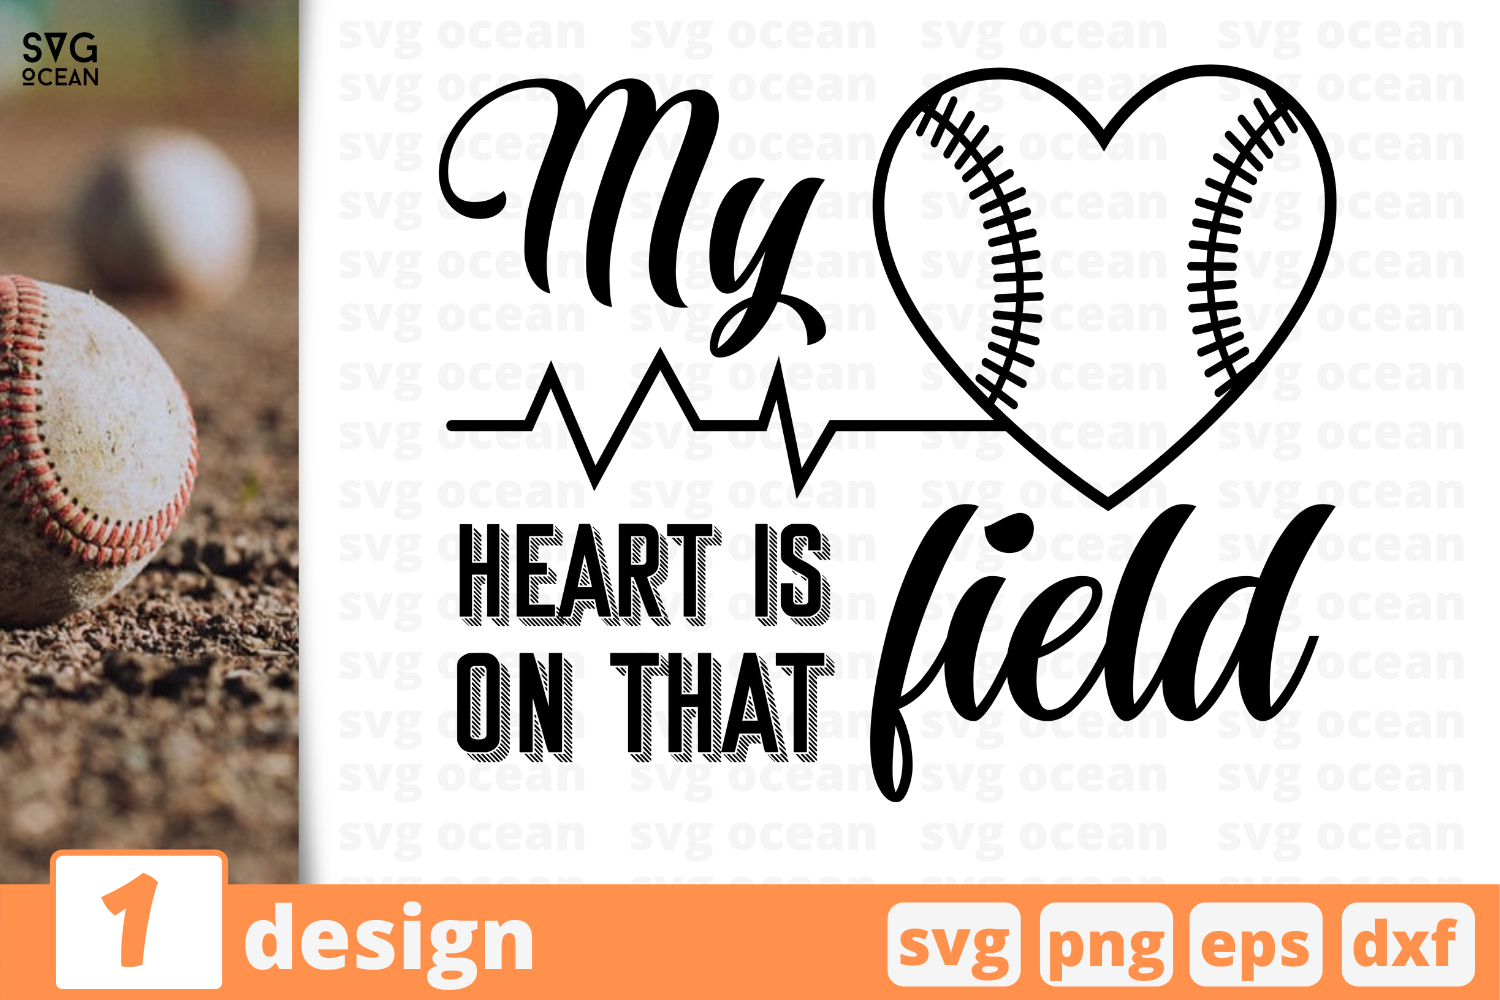 Download Free My Heart Is On That Field Graphic By Svgocean Creative Fabrica for Cricut Explore, Silhouette and other cutting machines.